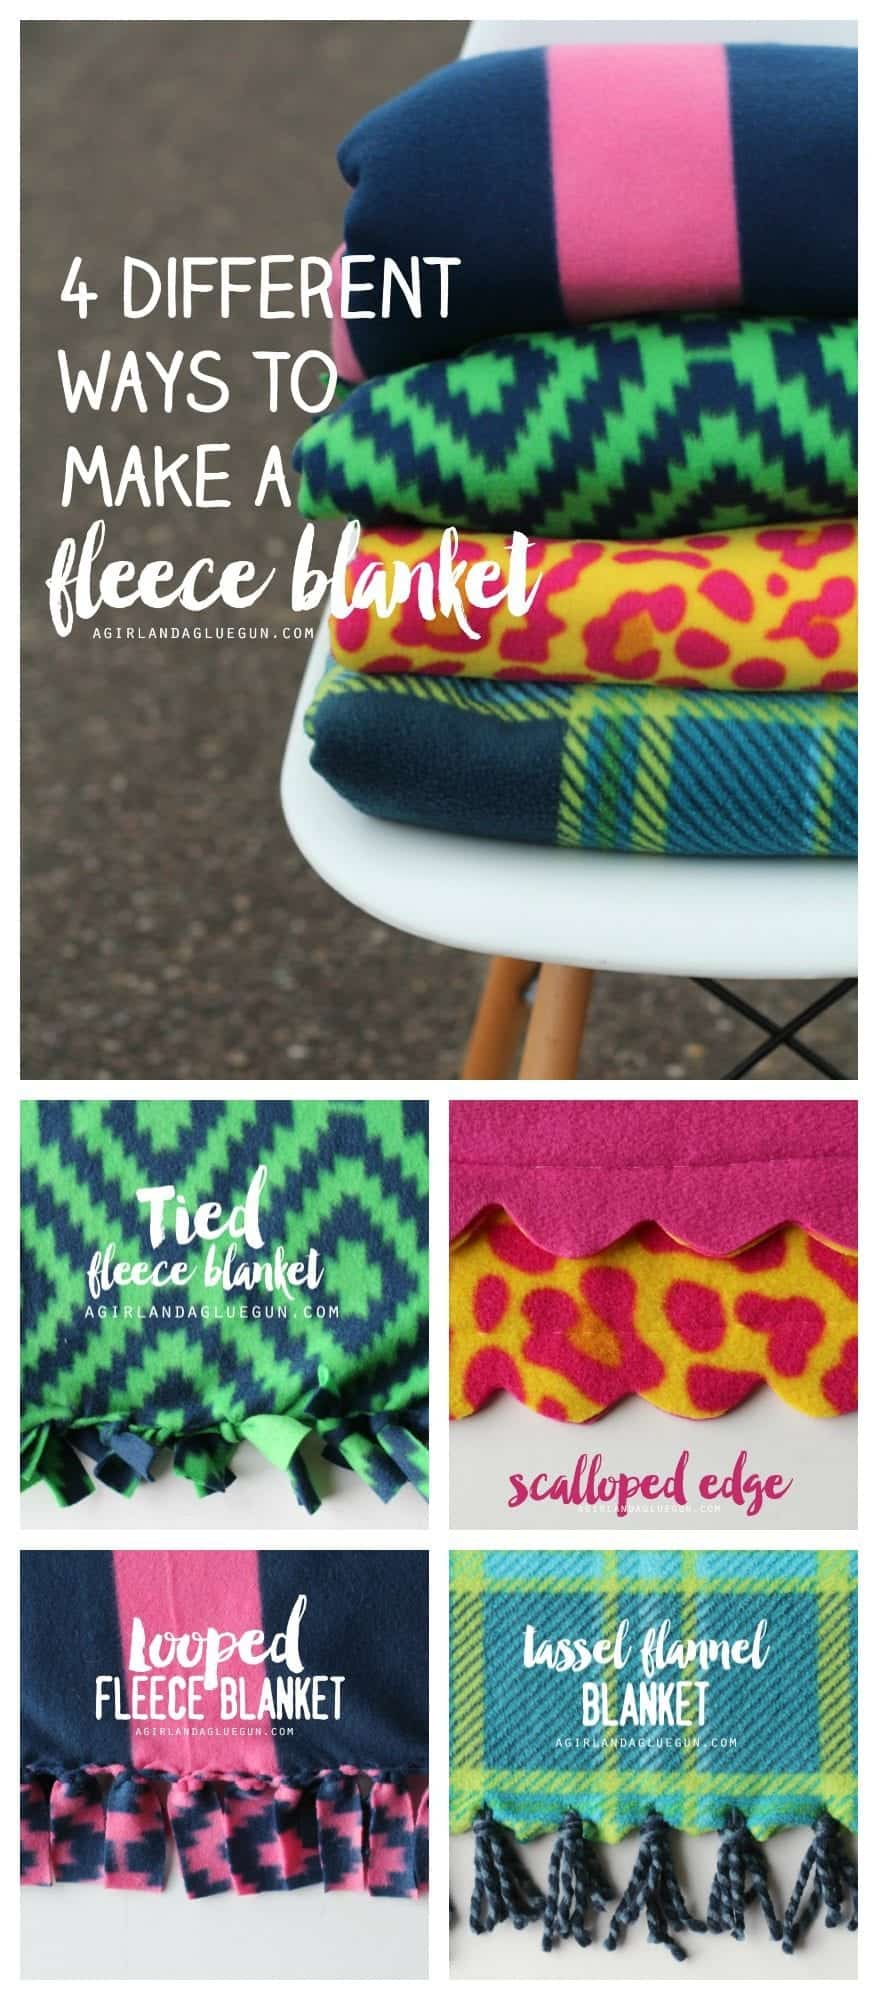 fun-different-ways-to-make-a-fleece-blanket-a-girl-and-a-glue-gun